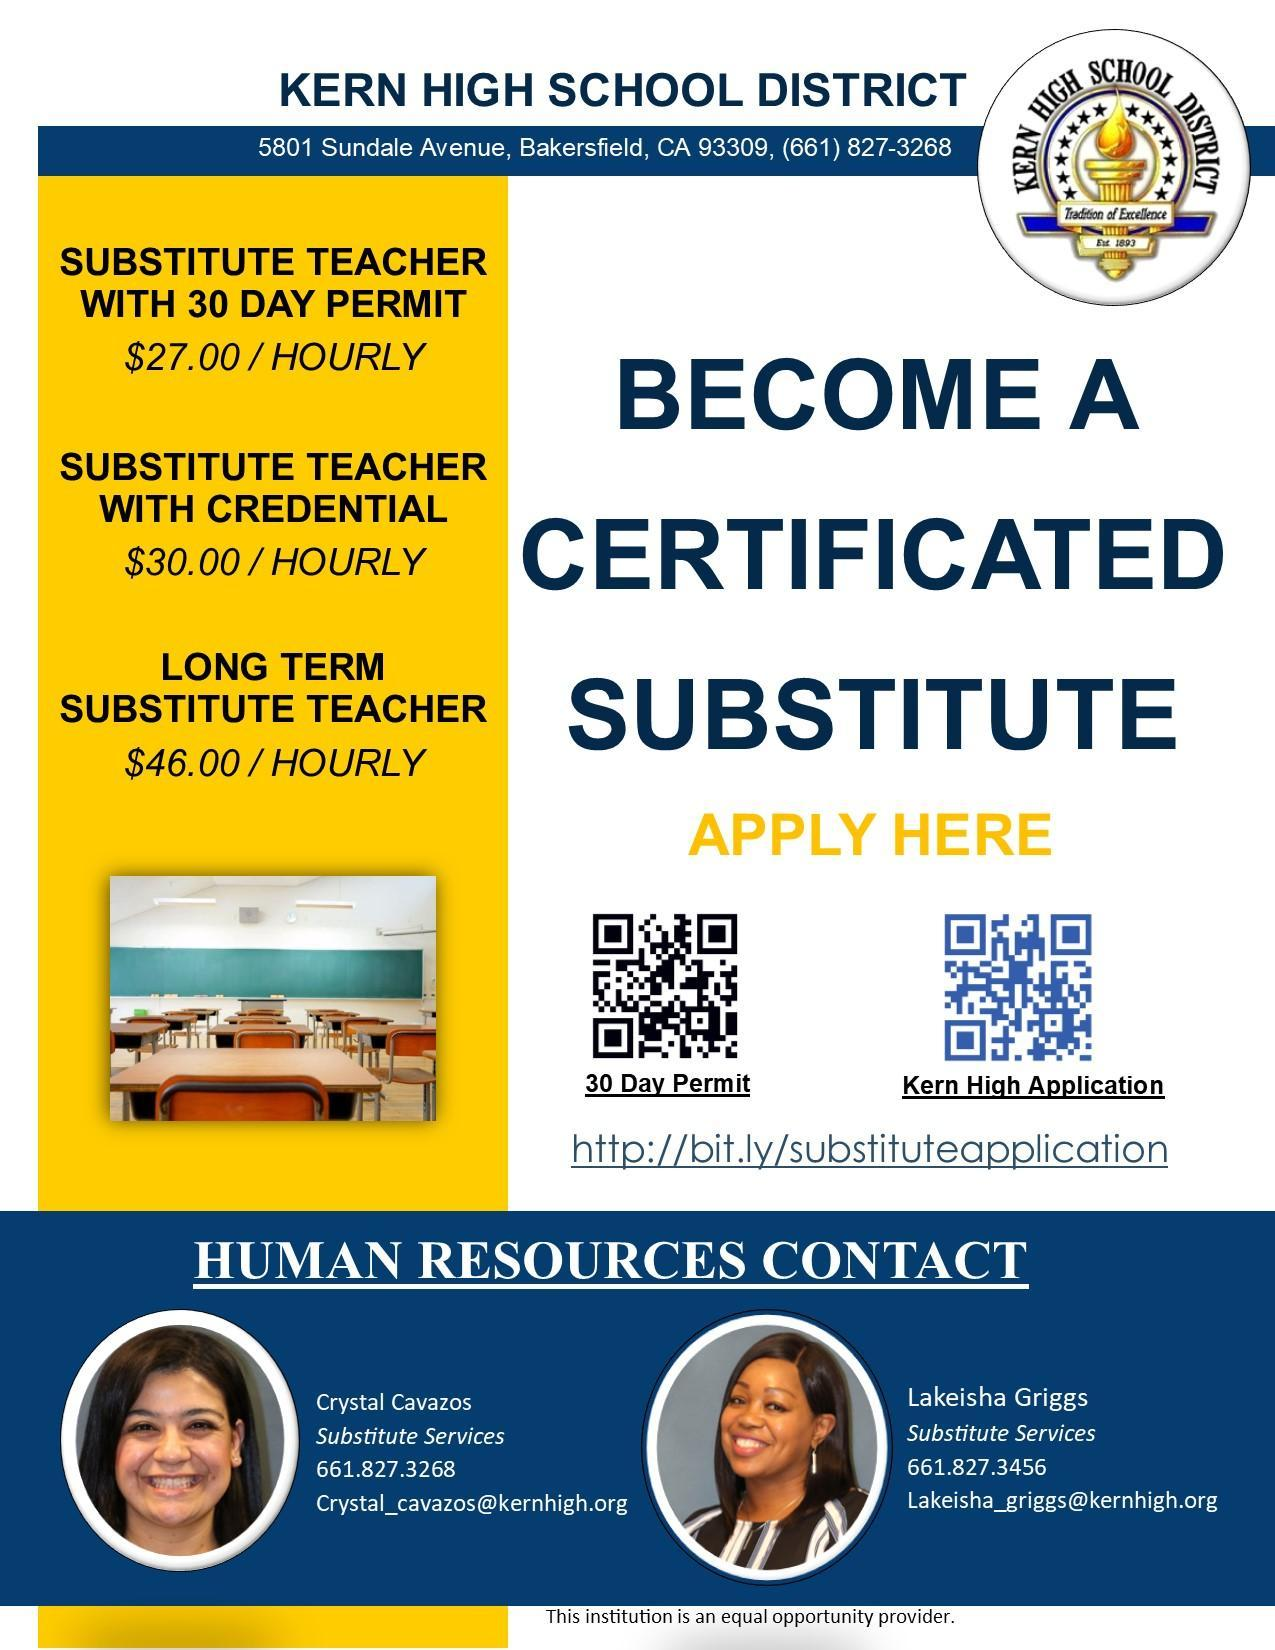 Certificated Substitutes (Teacher)